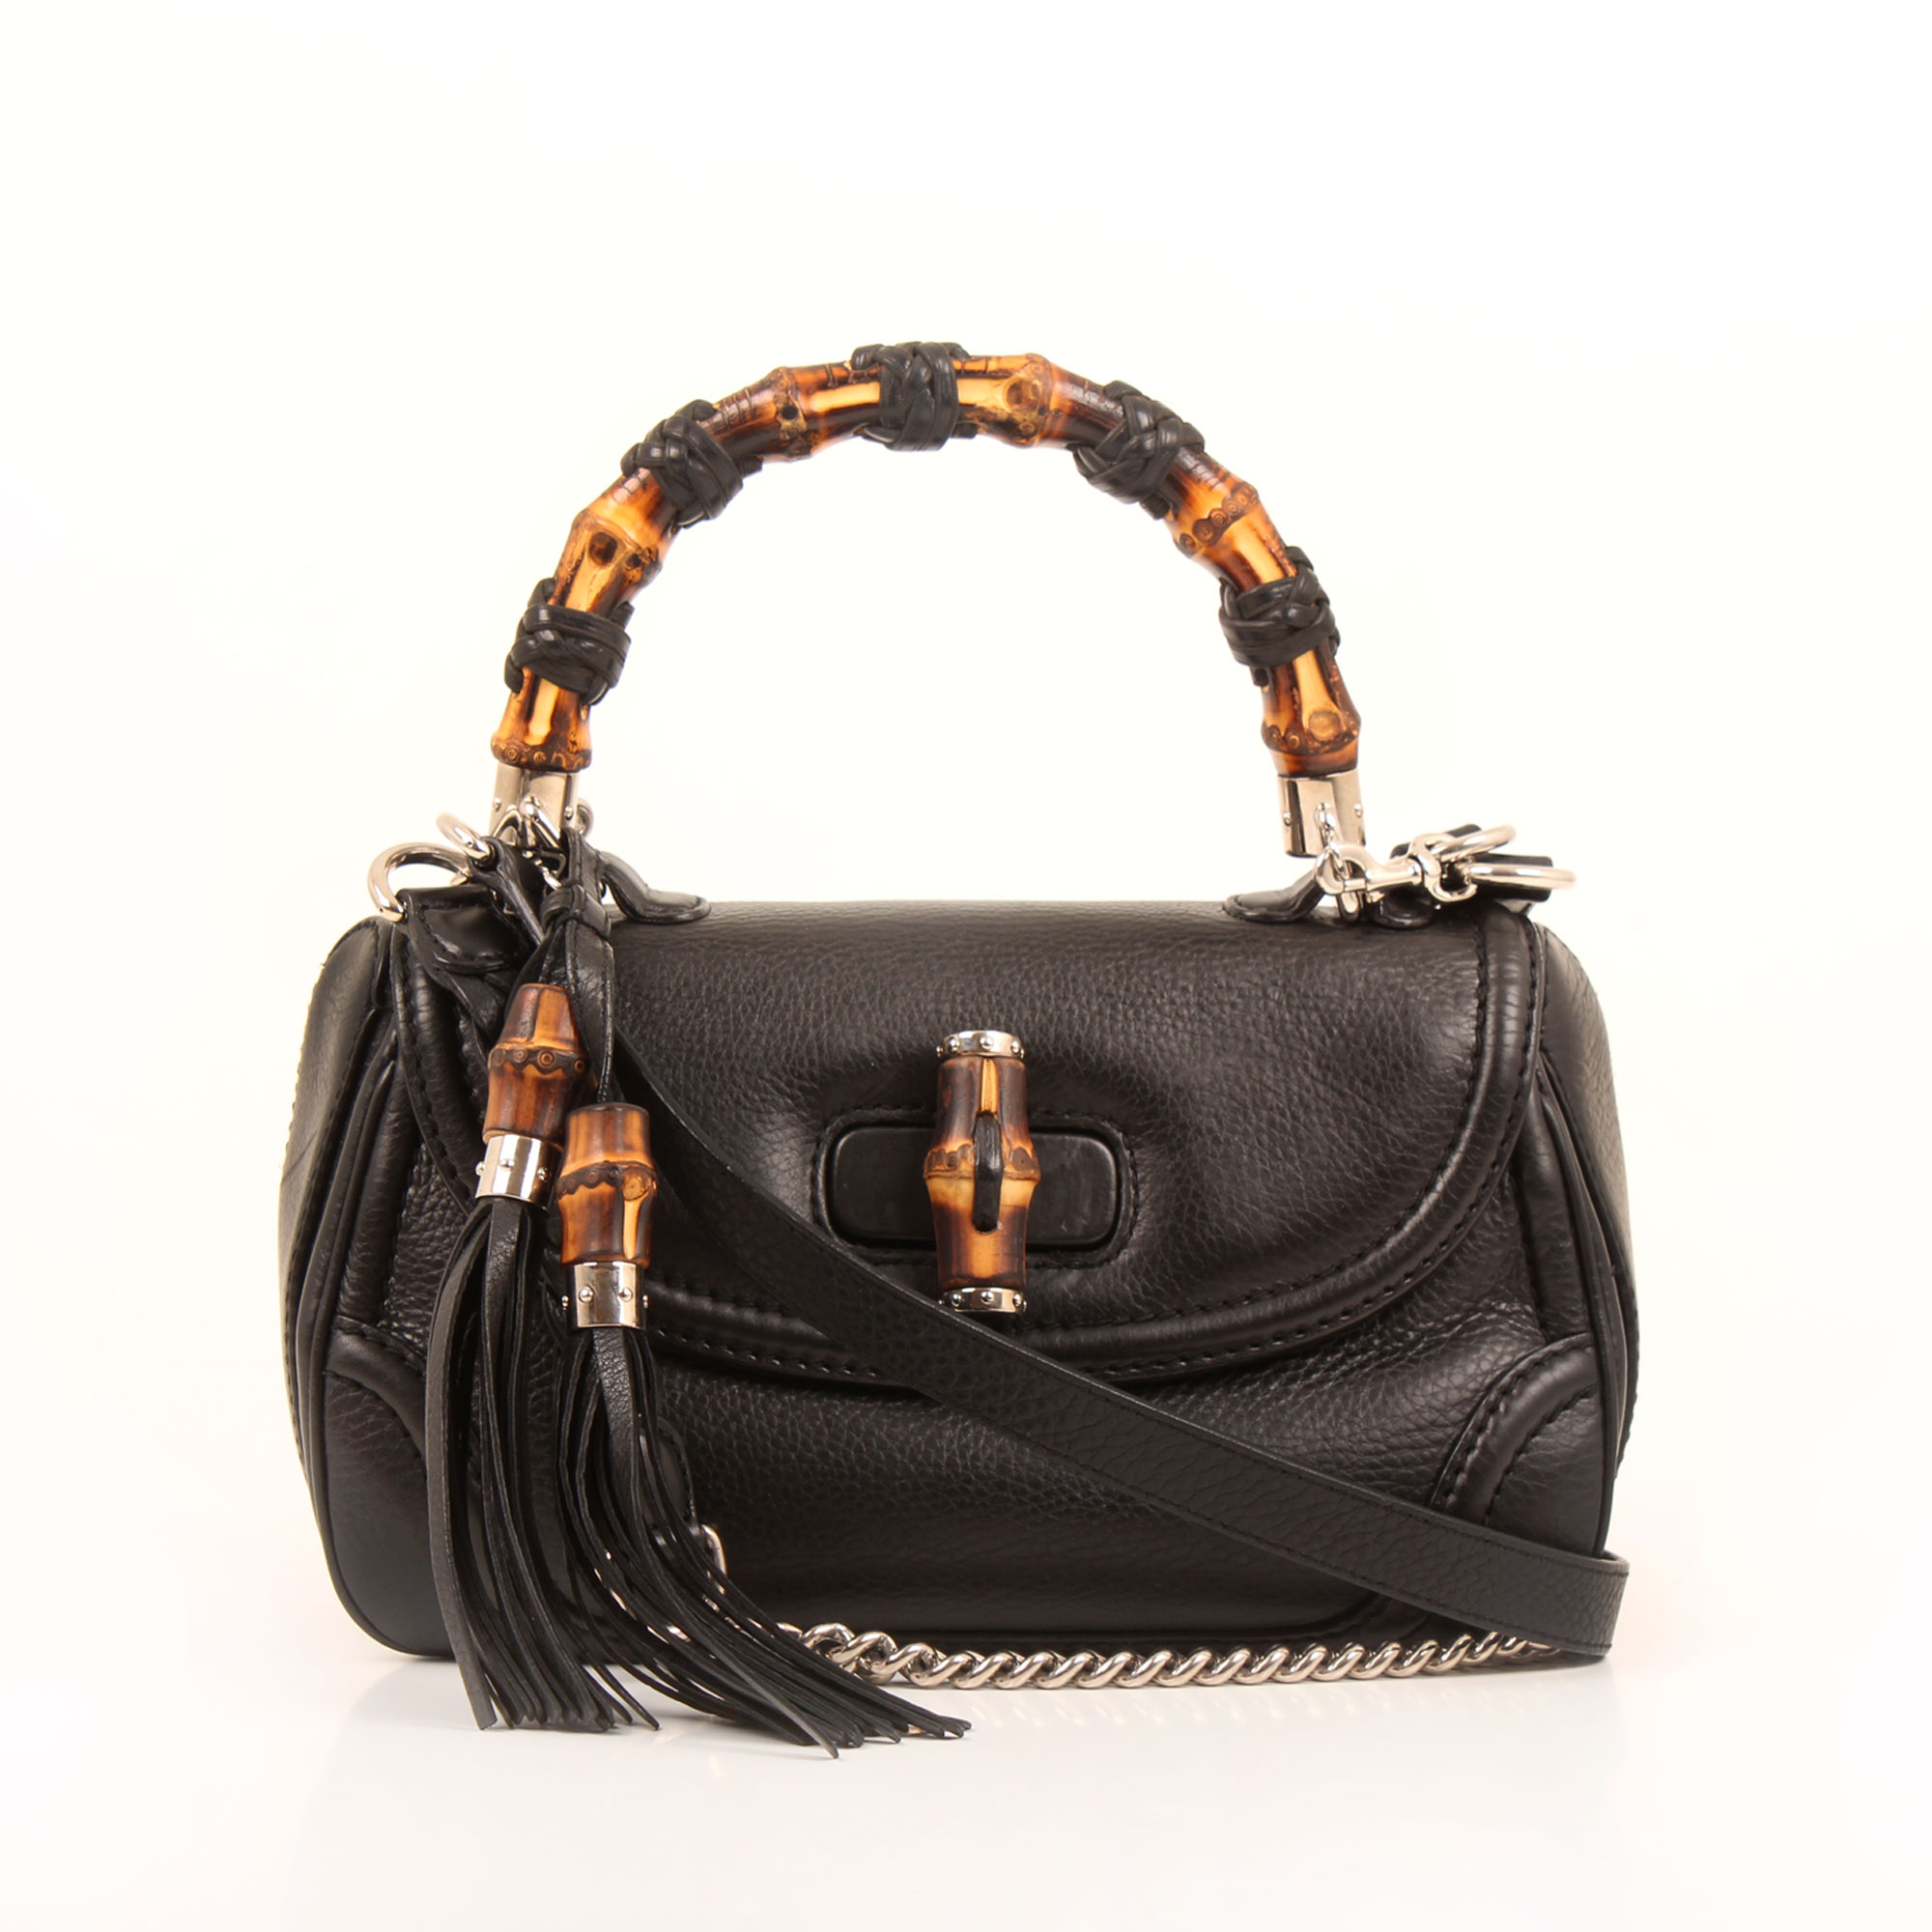 Front image of gucci new bamboo black bag with strap